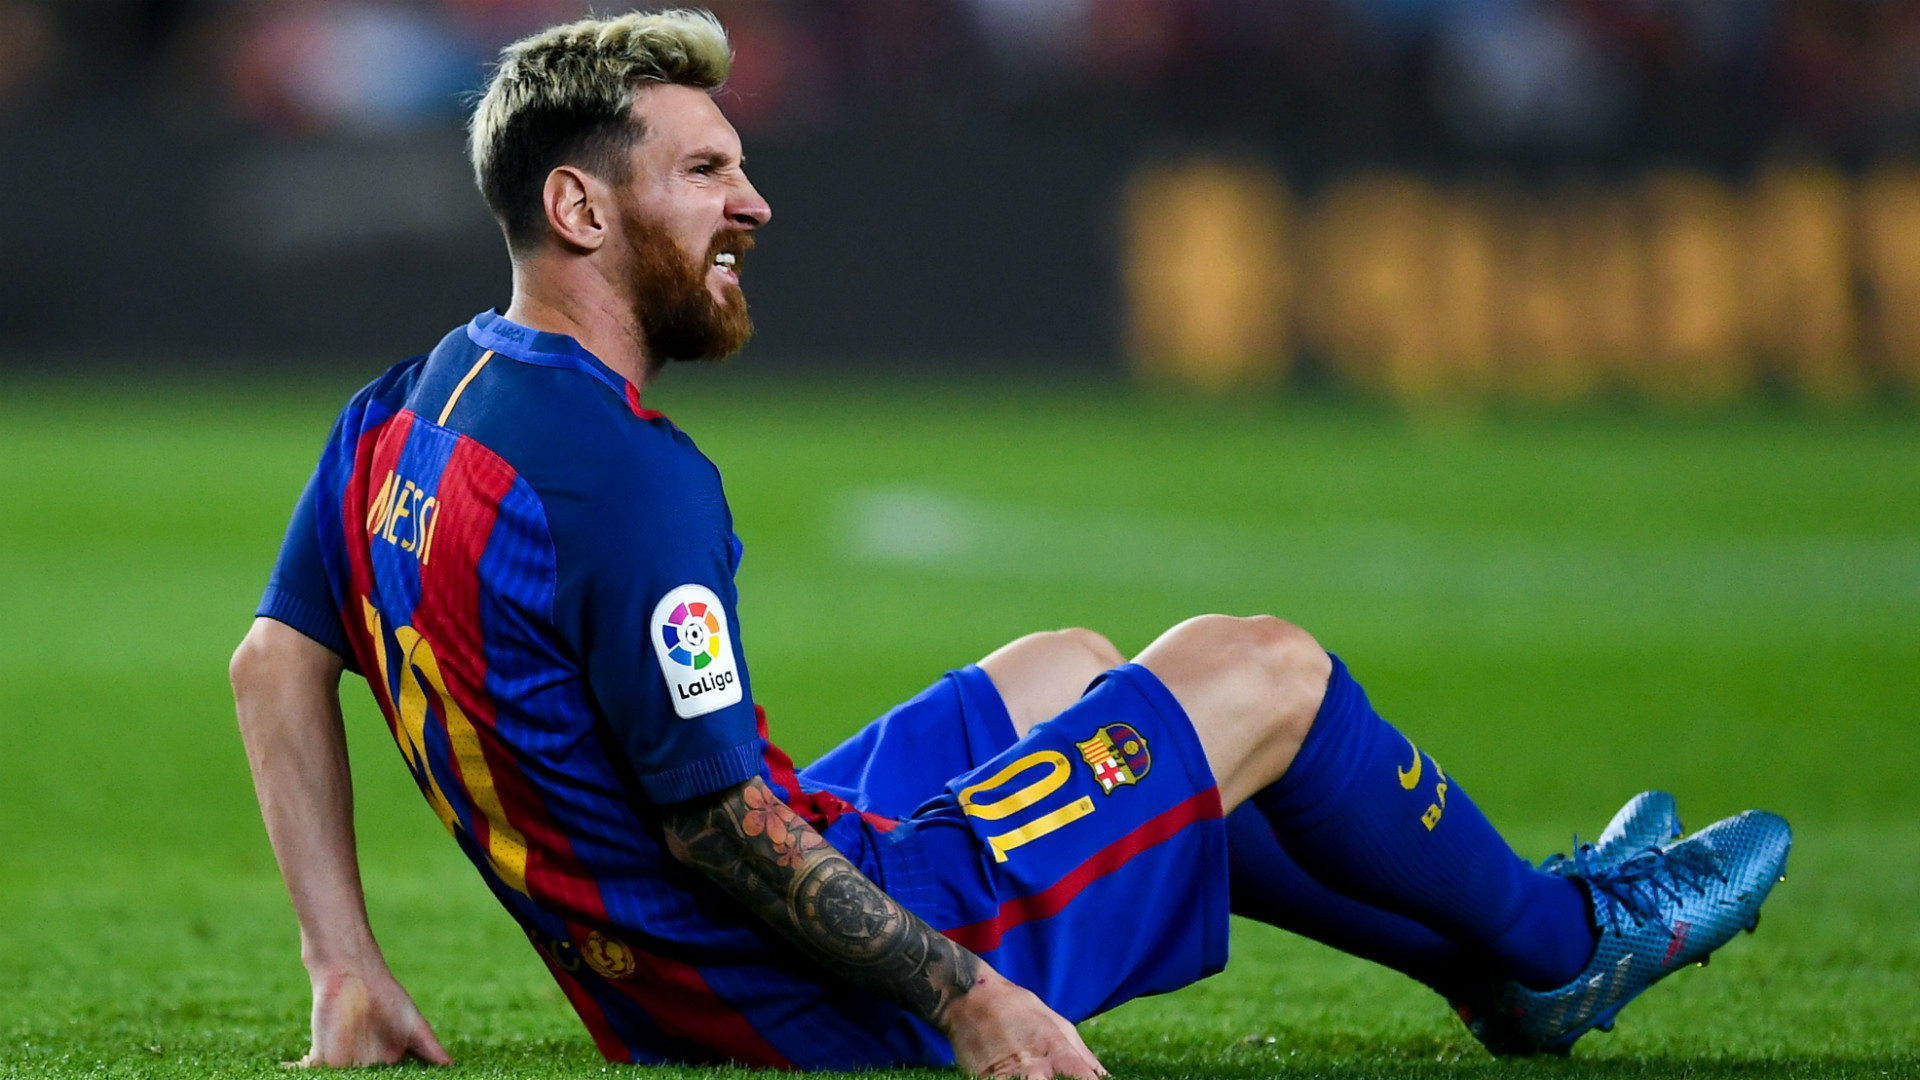 Transfer news: Messi wants release clause in new Barcelona deal – Goal.com